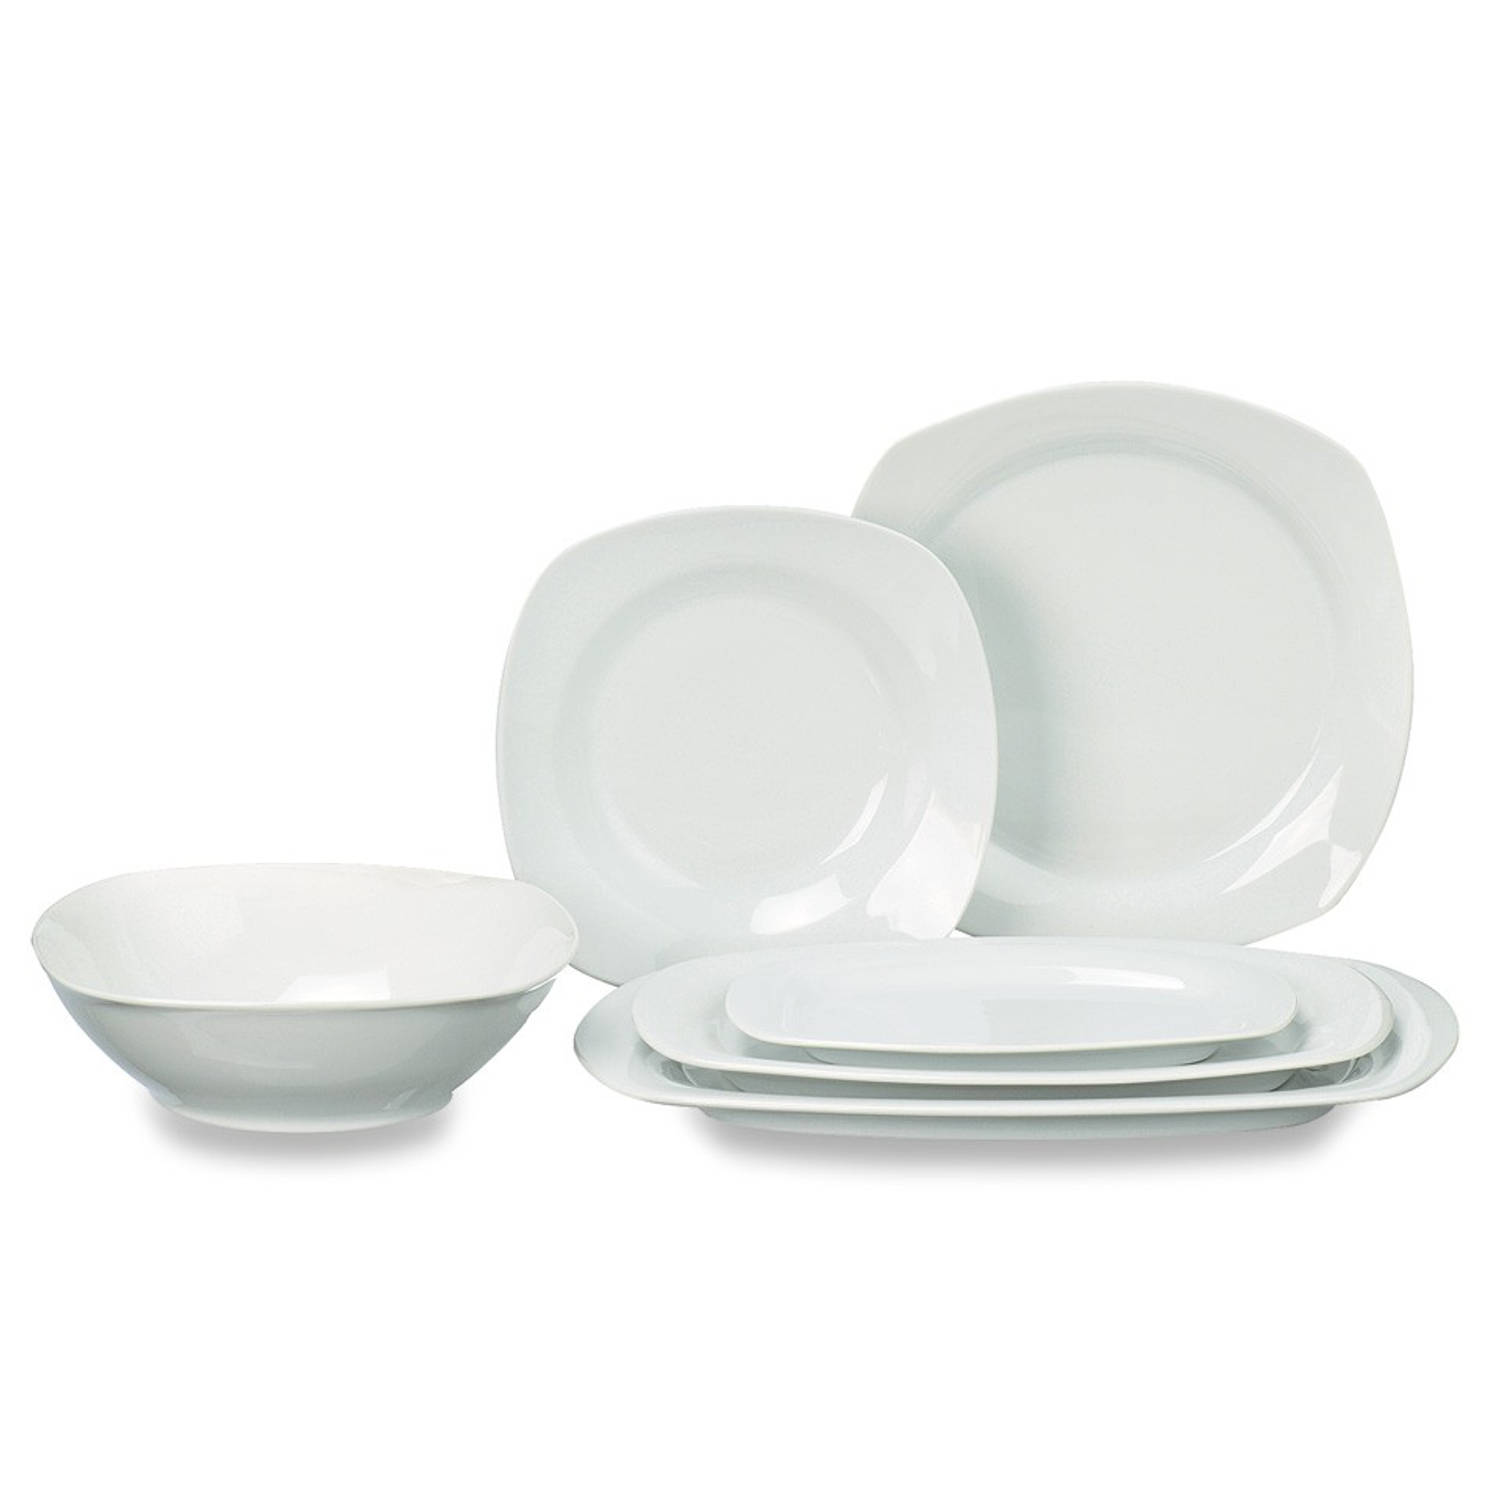 complete 12 persoons servies